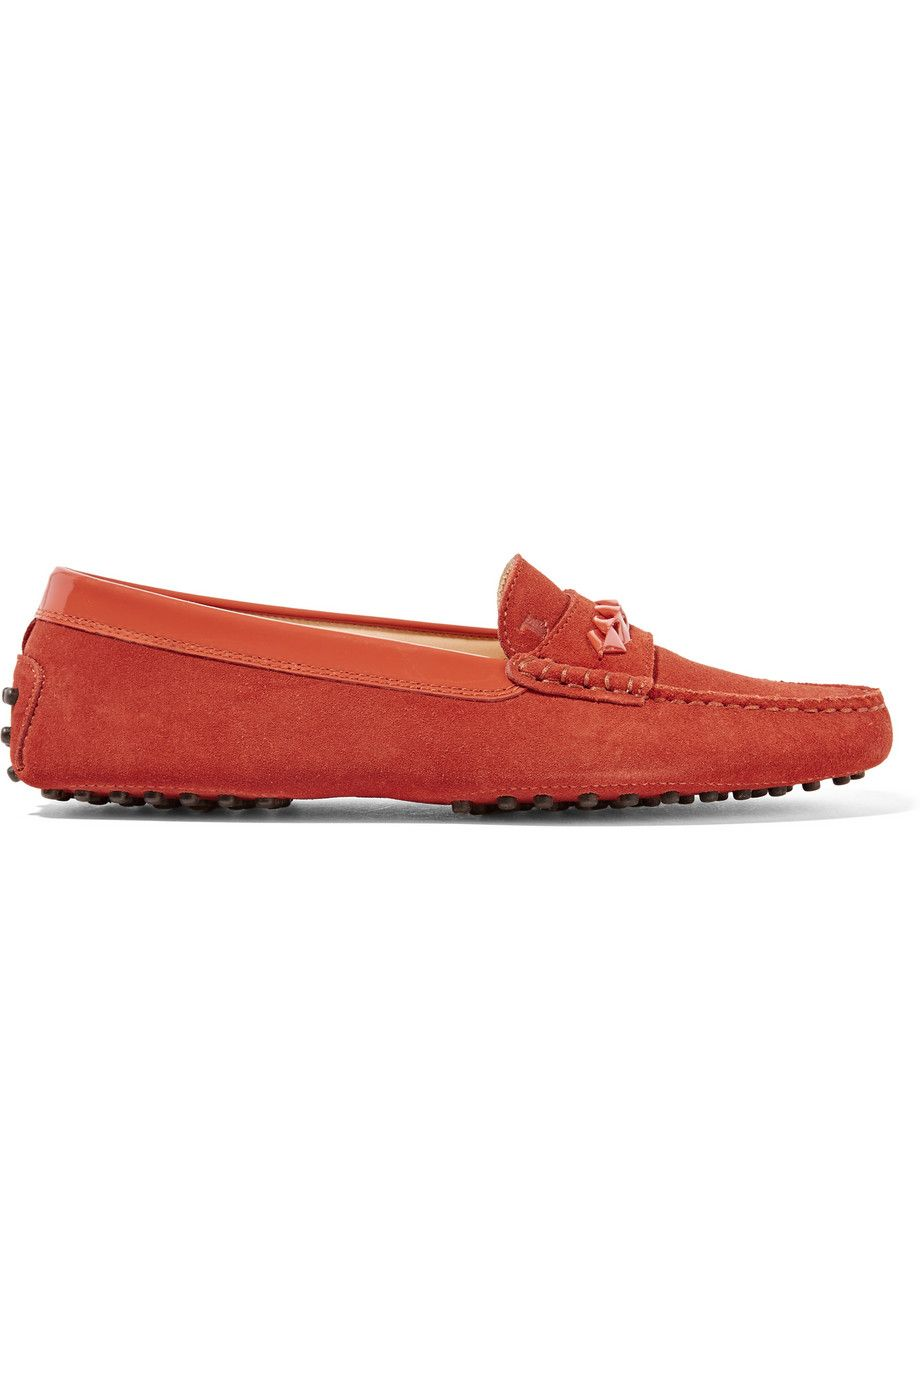 TOD'S Patent-Leather-Trimmed Suede Loafers. #tods #shoes #flats